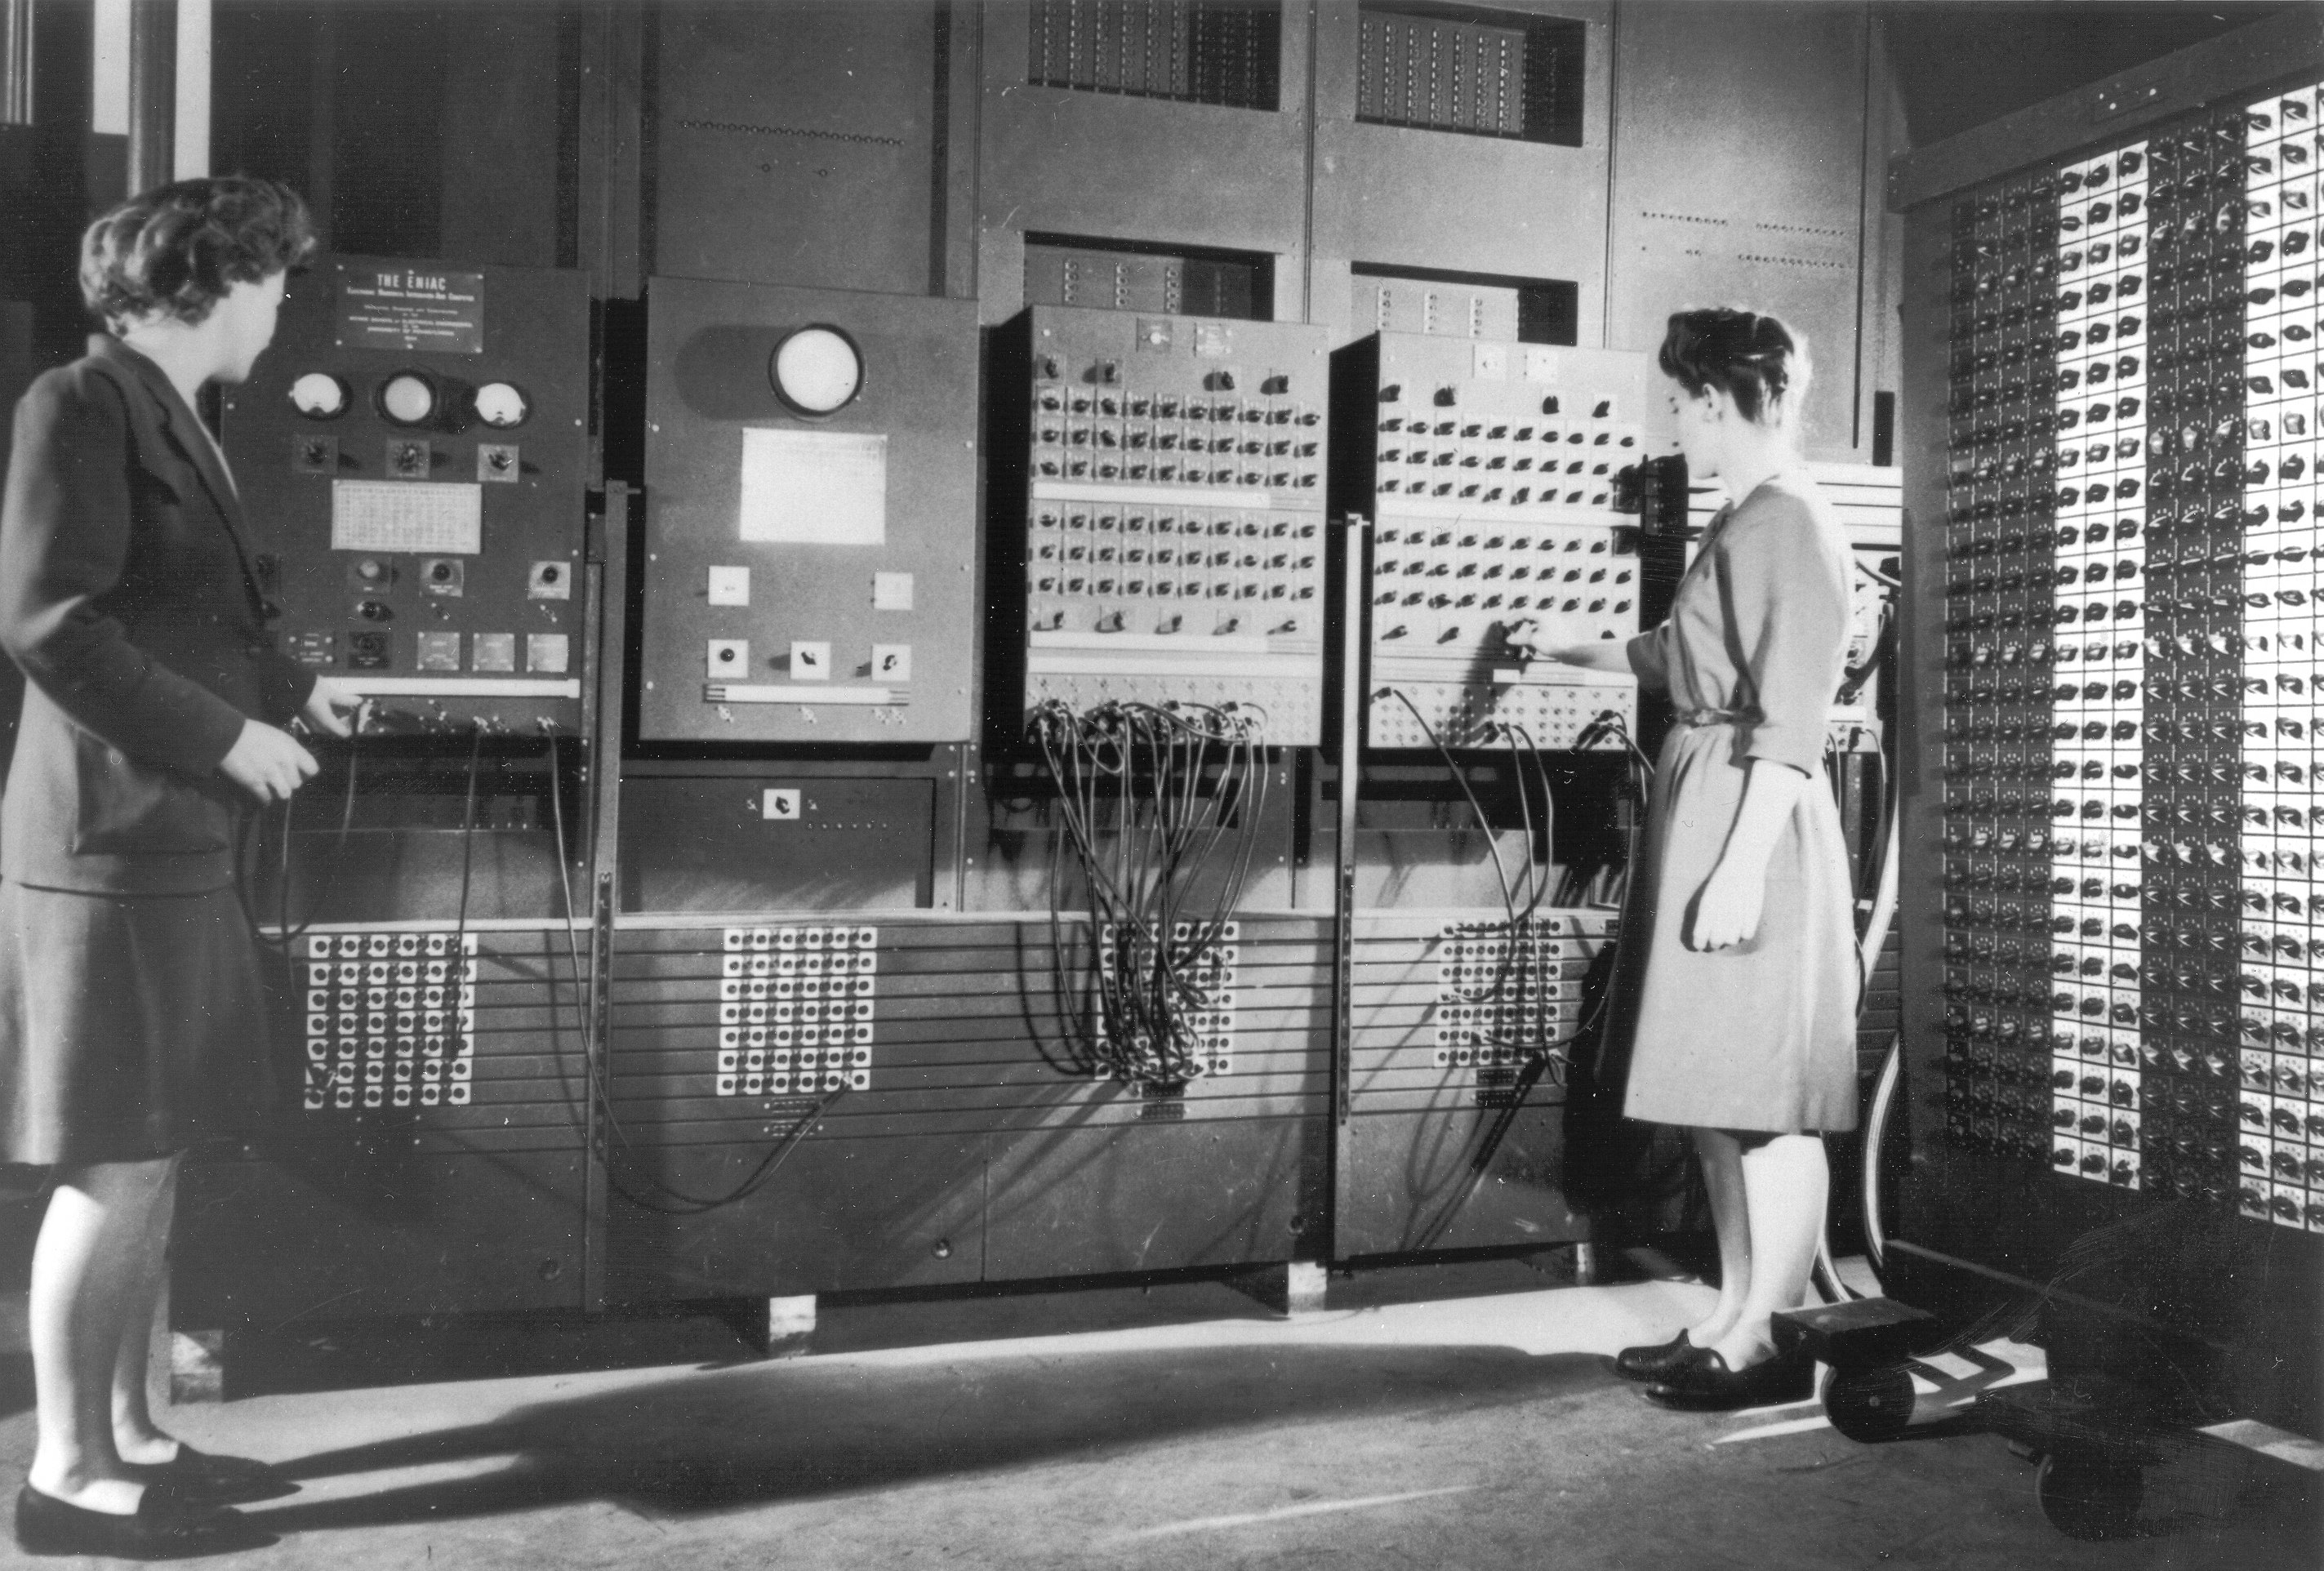 Two of the ENIAC programmers operating the computer, important women in programming